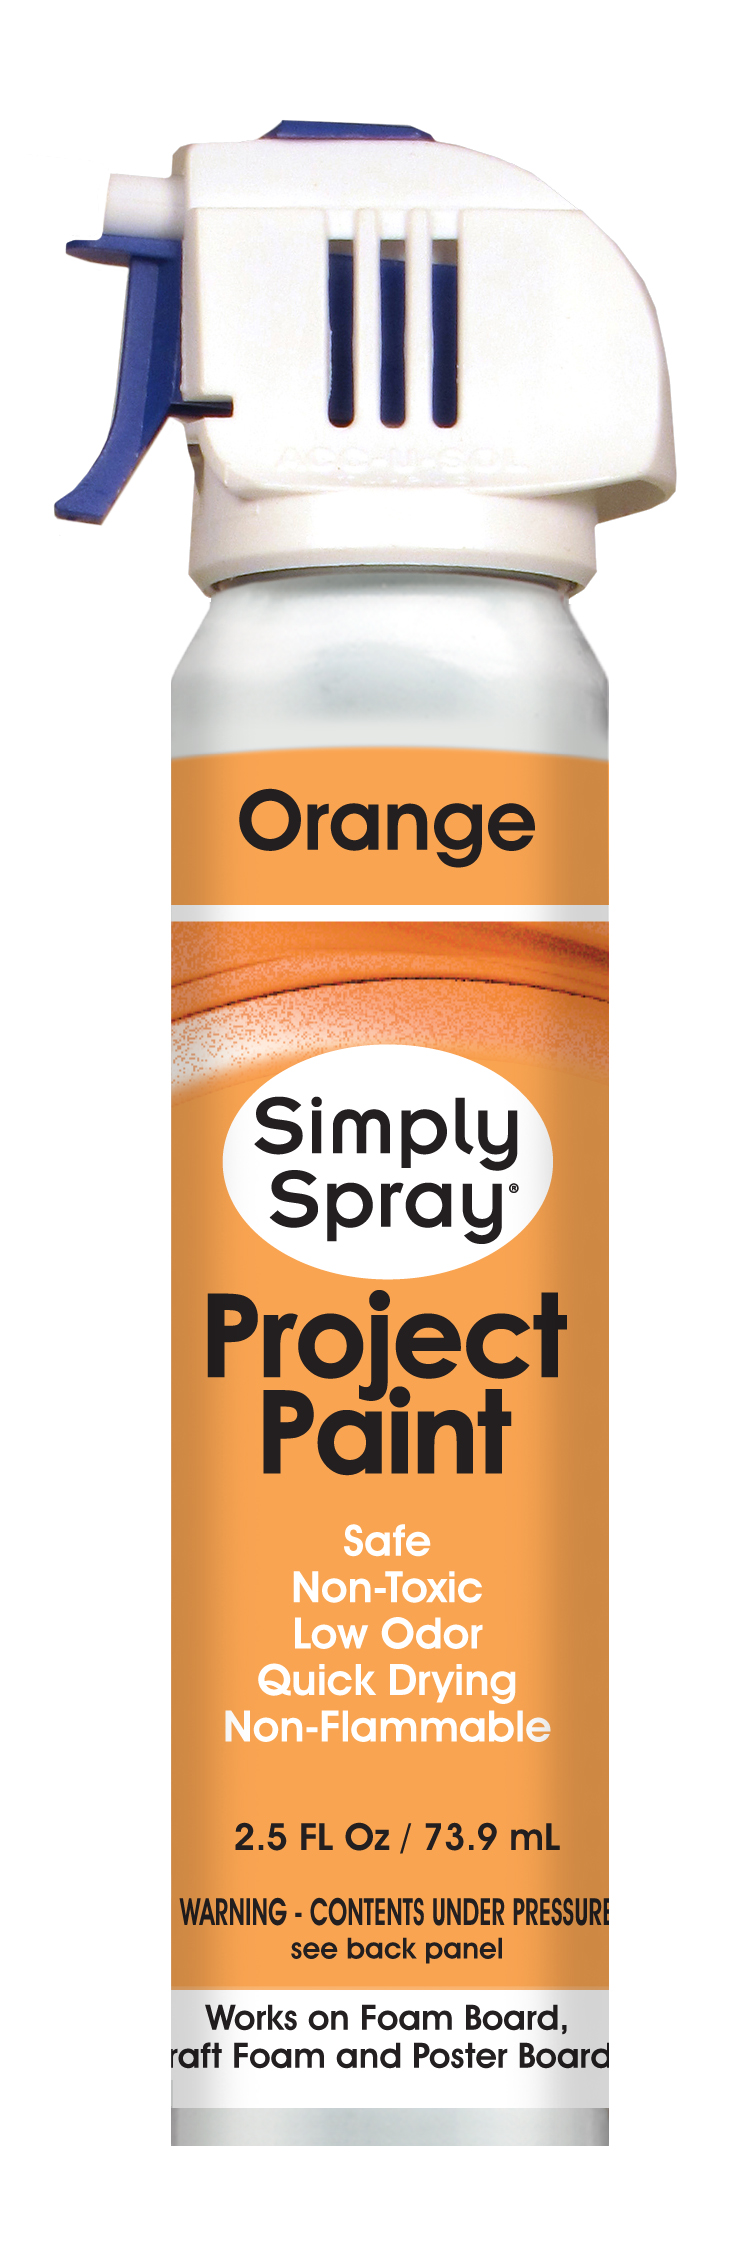 Simply Spray Project Paint Review And Giveaway